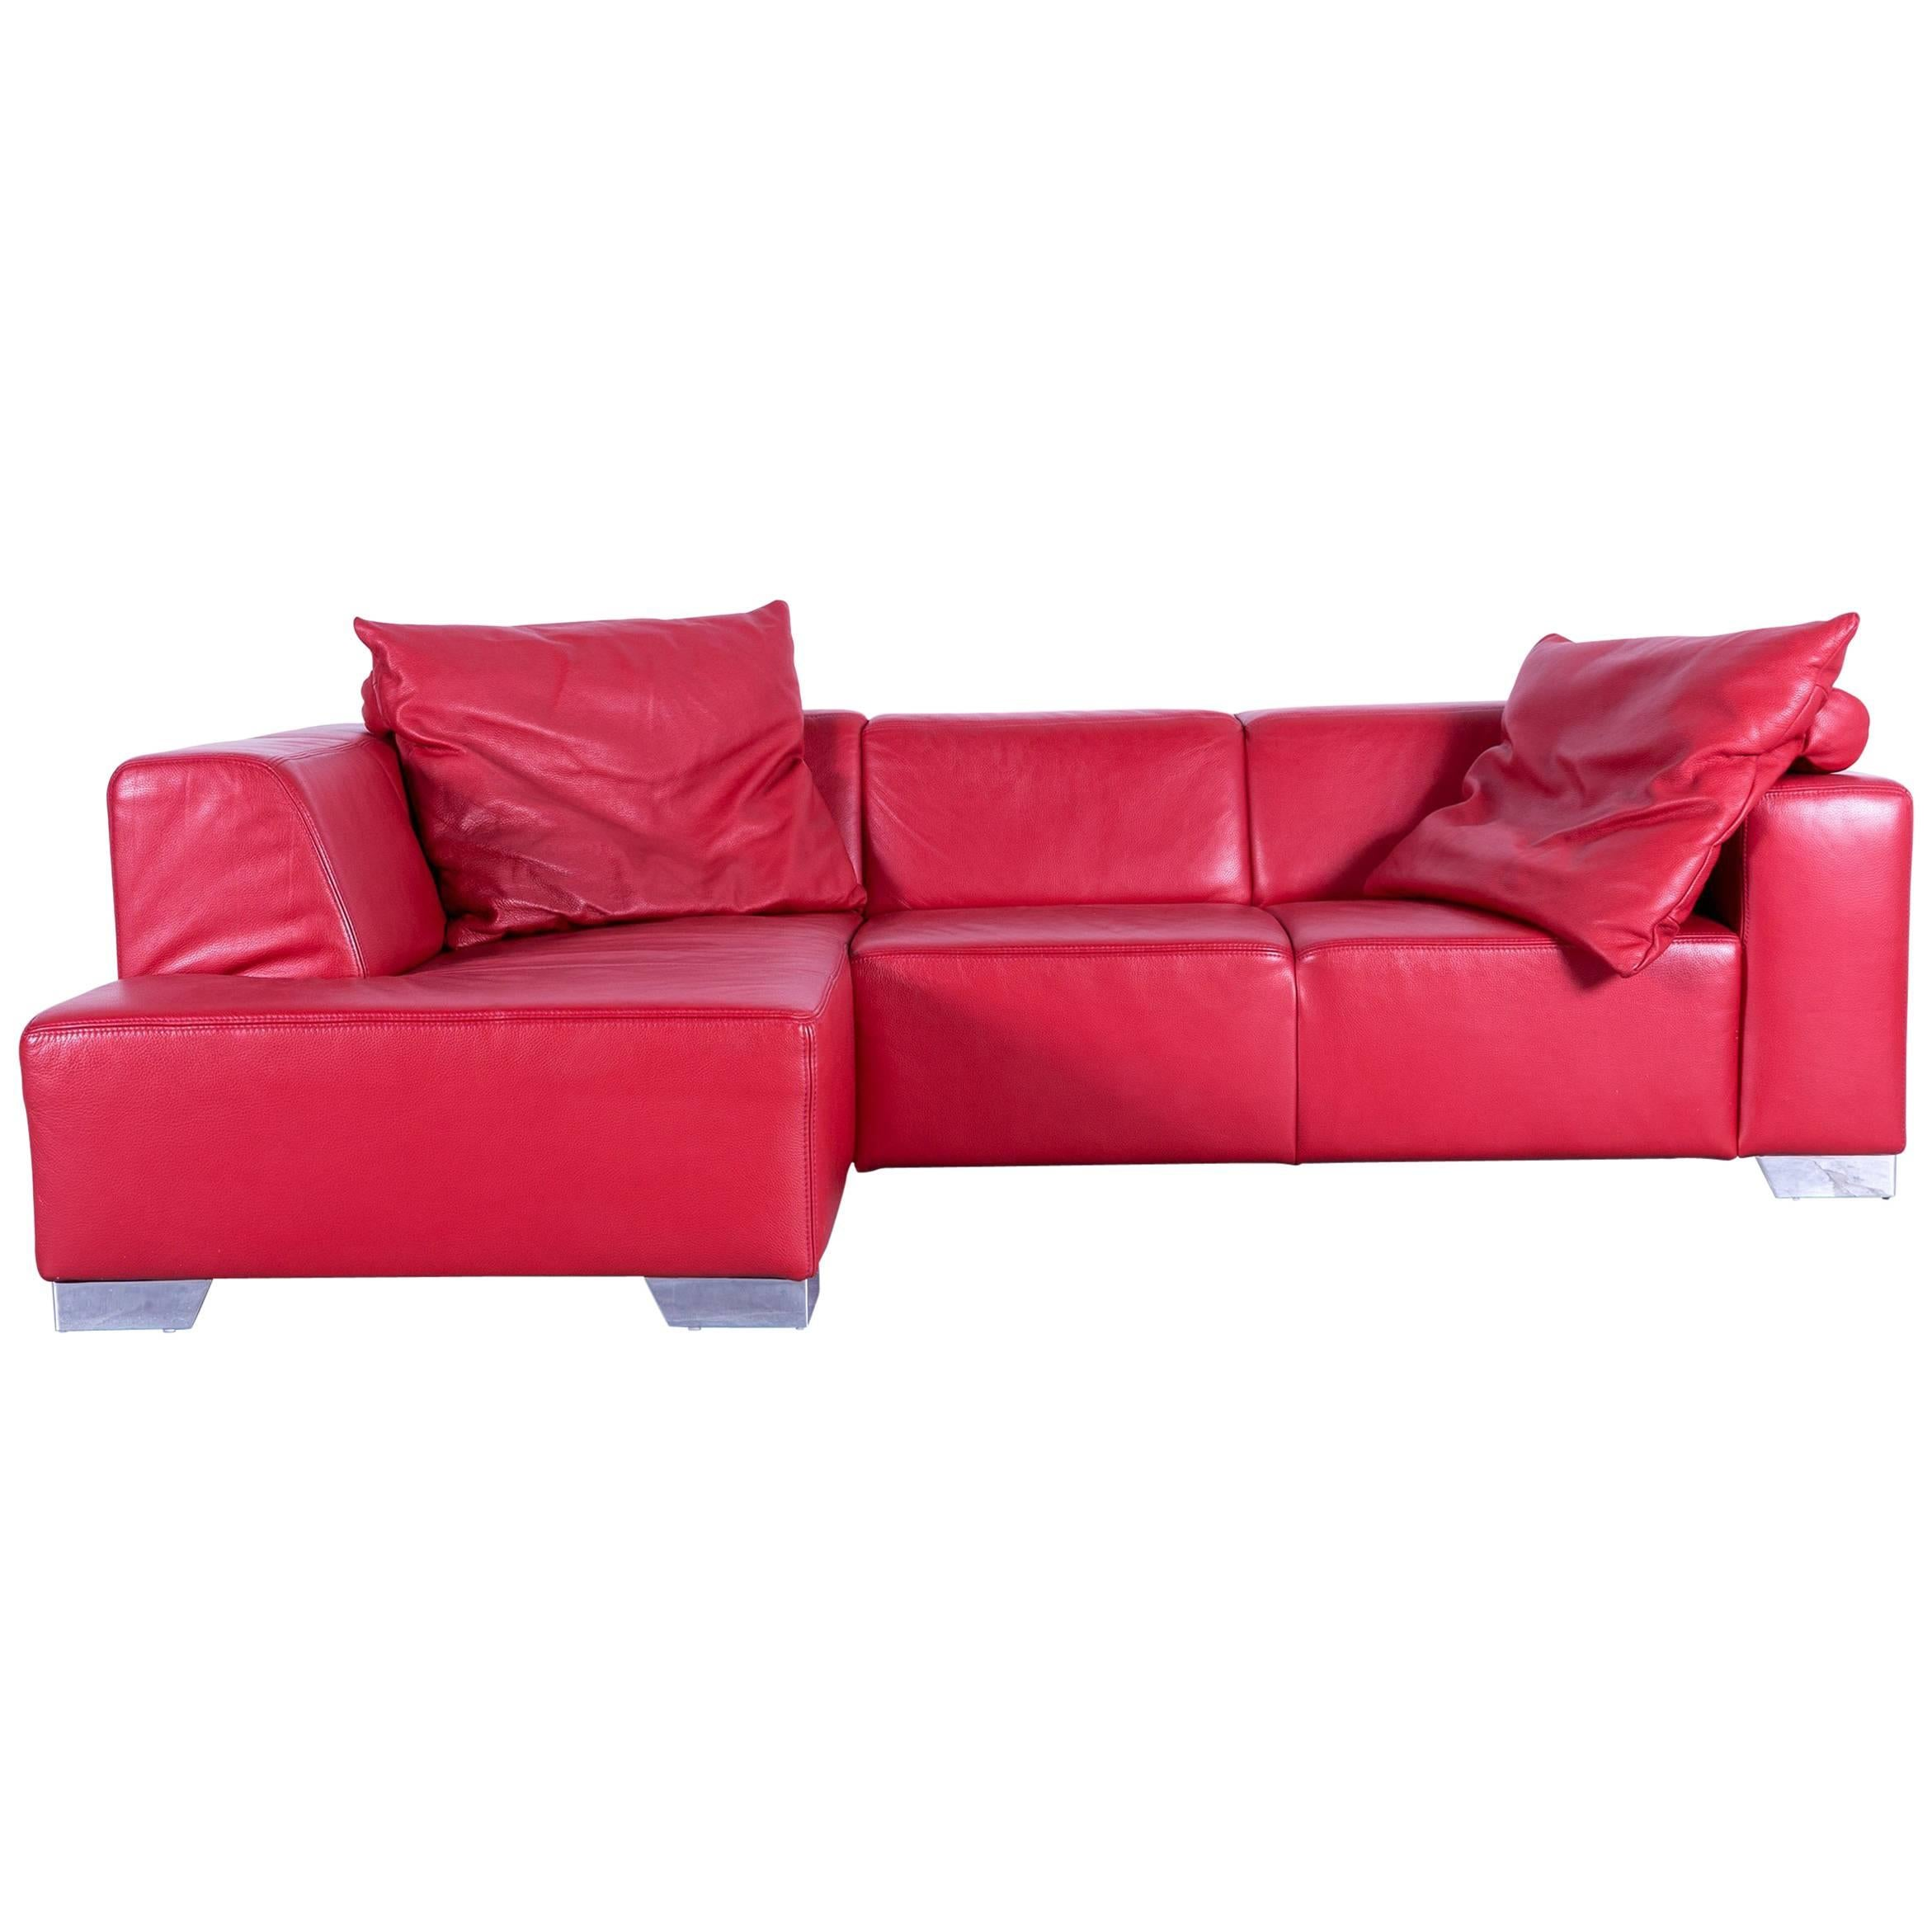 Nice Ewald Schillig Designer Sofa Red Leather Couch Chrome Feet Comfortable Amazing Pictures